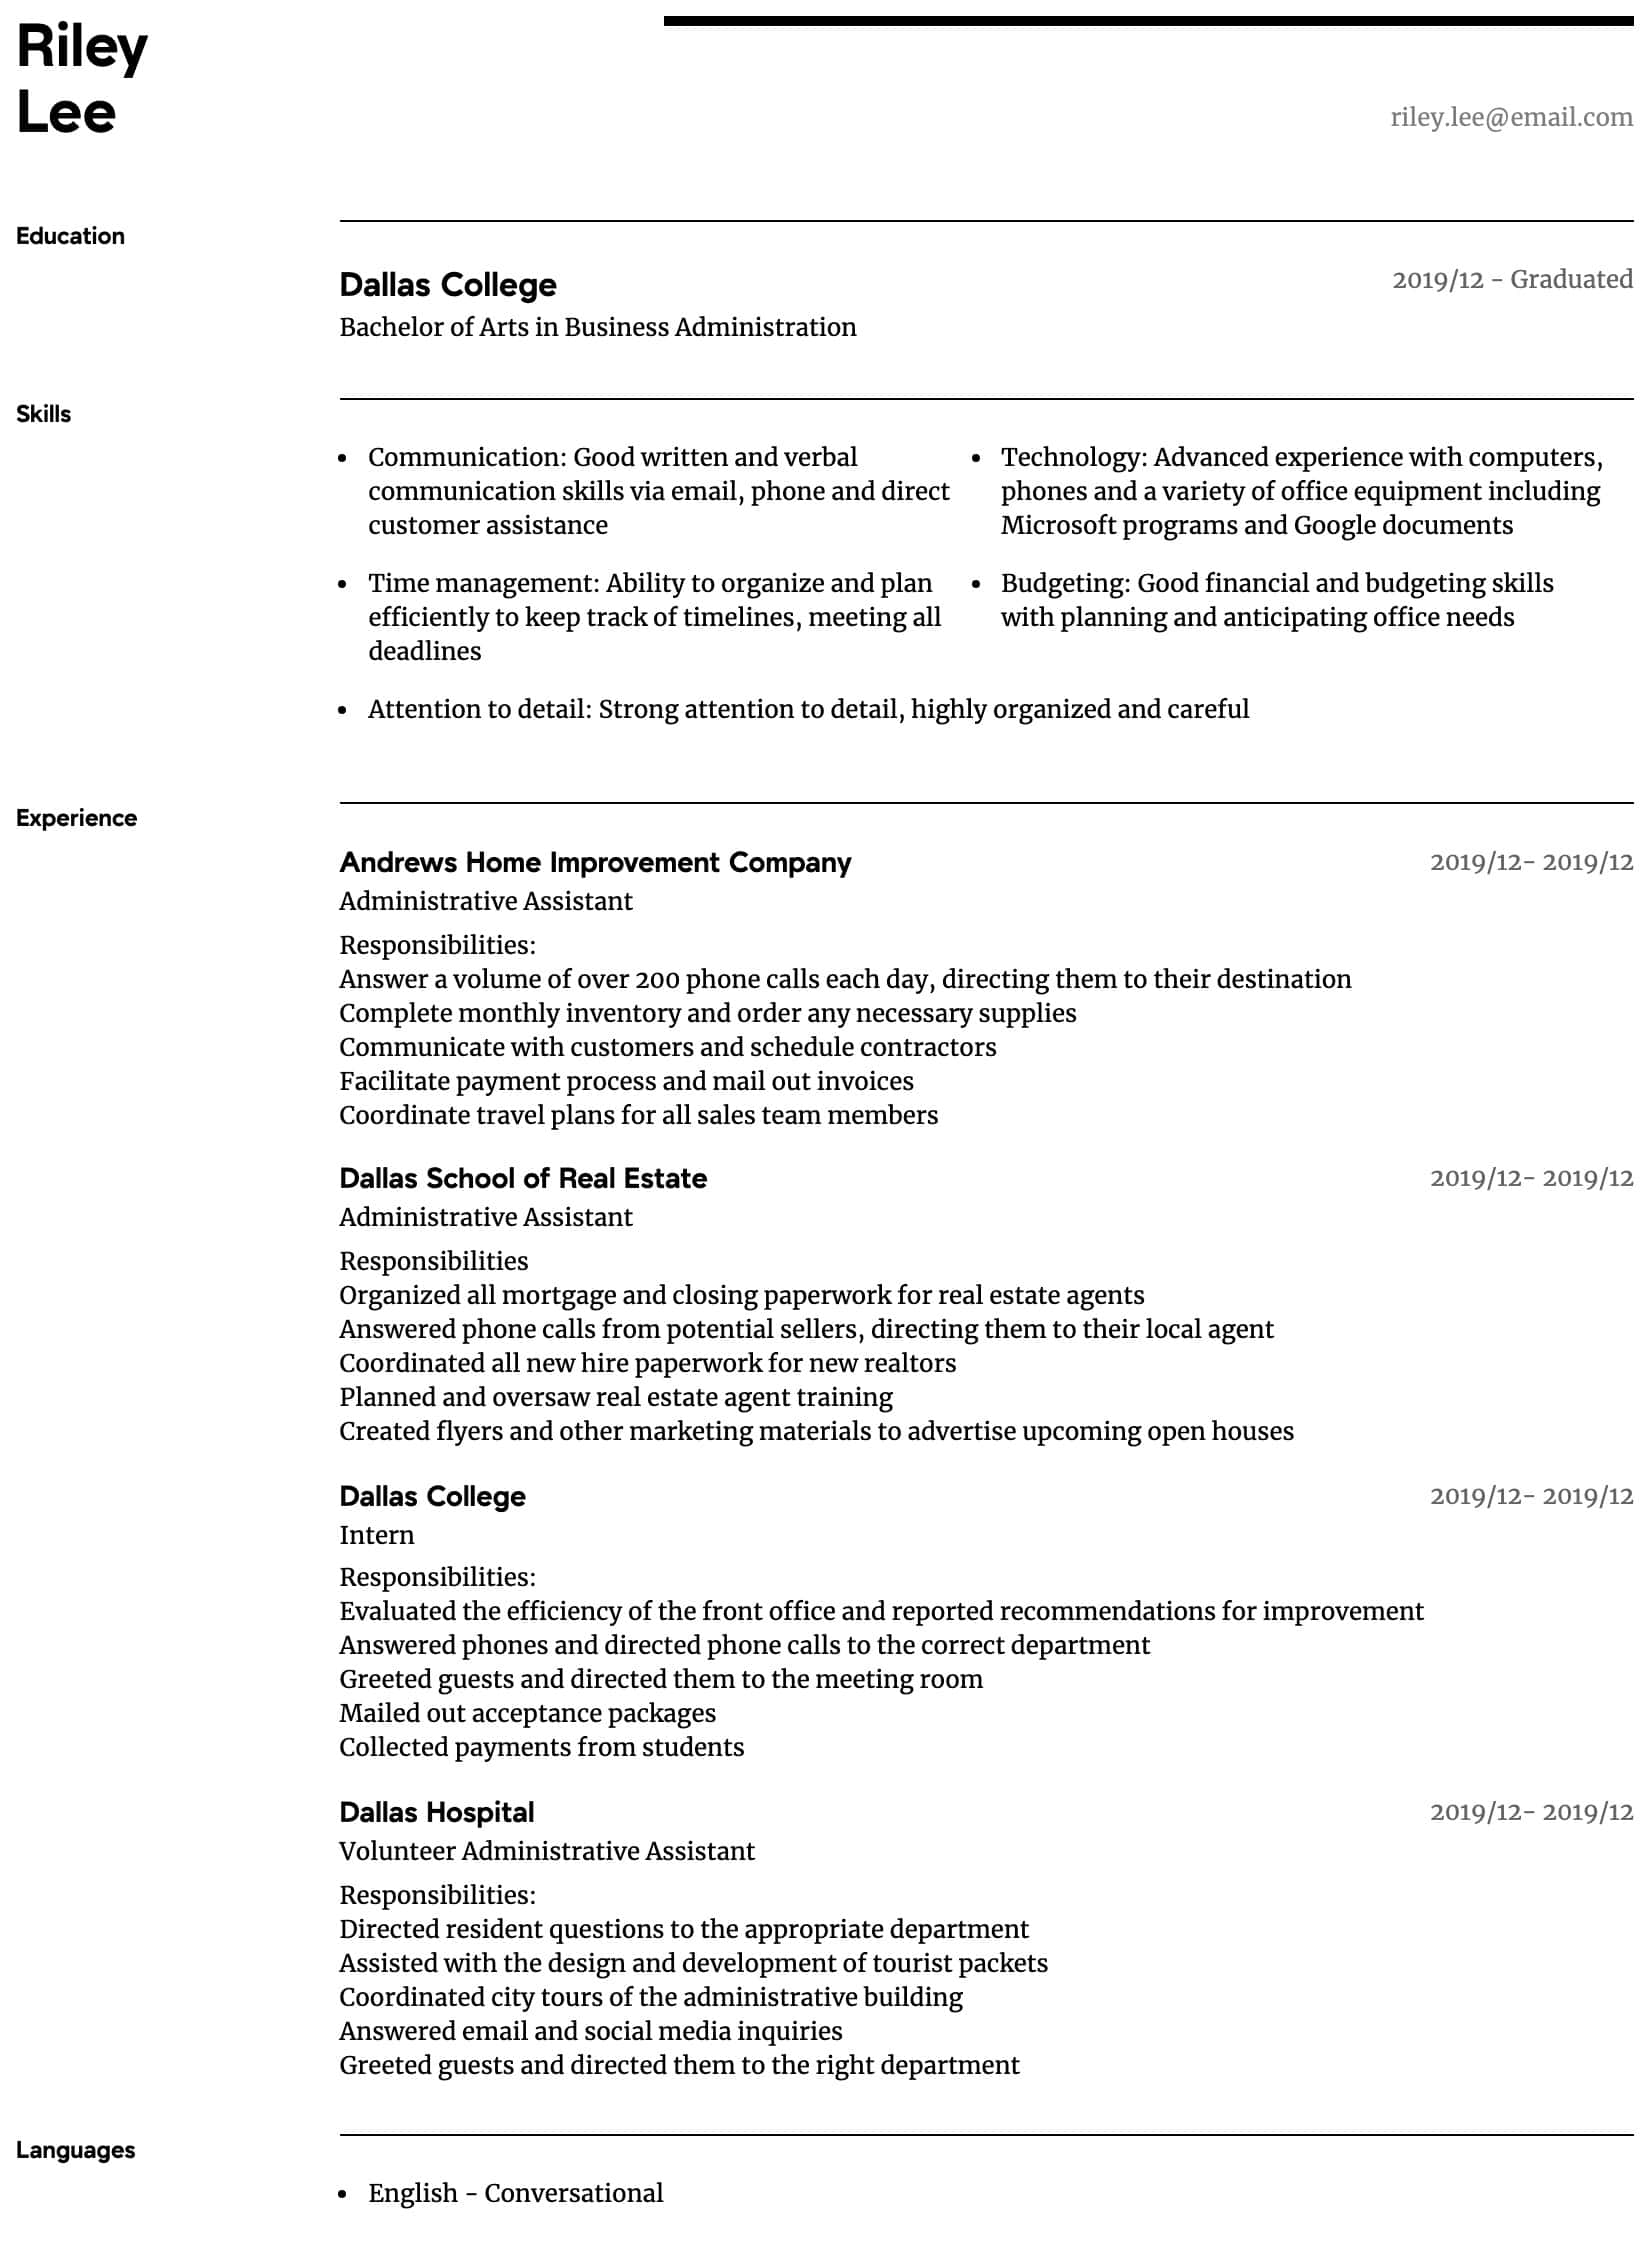 administrative assistant resume samples all experience levels example of intermediate Resume Example Resume Of Administrative Assistant